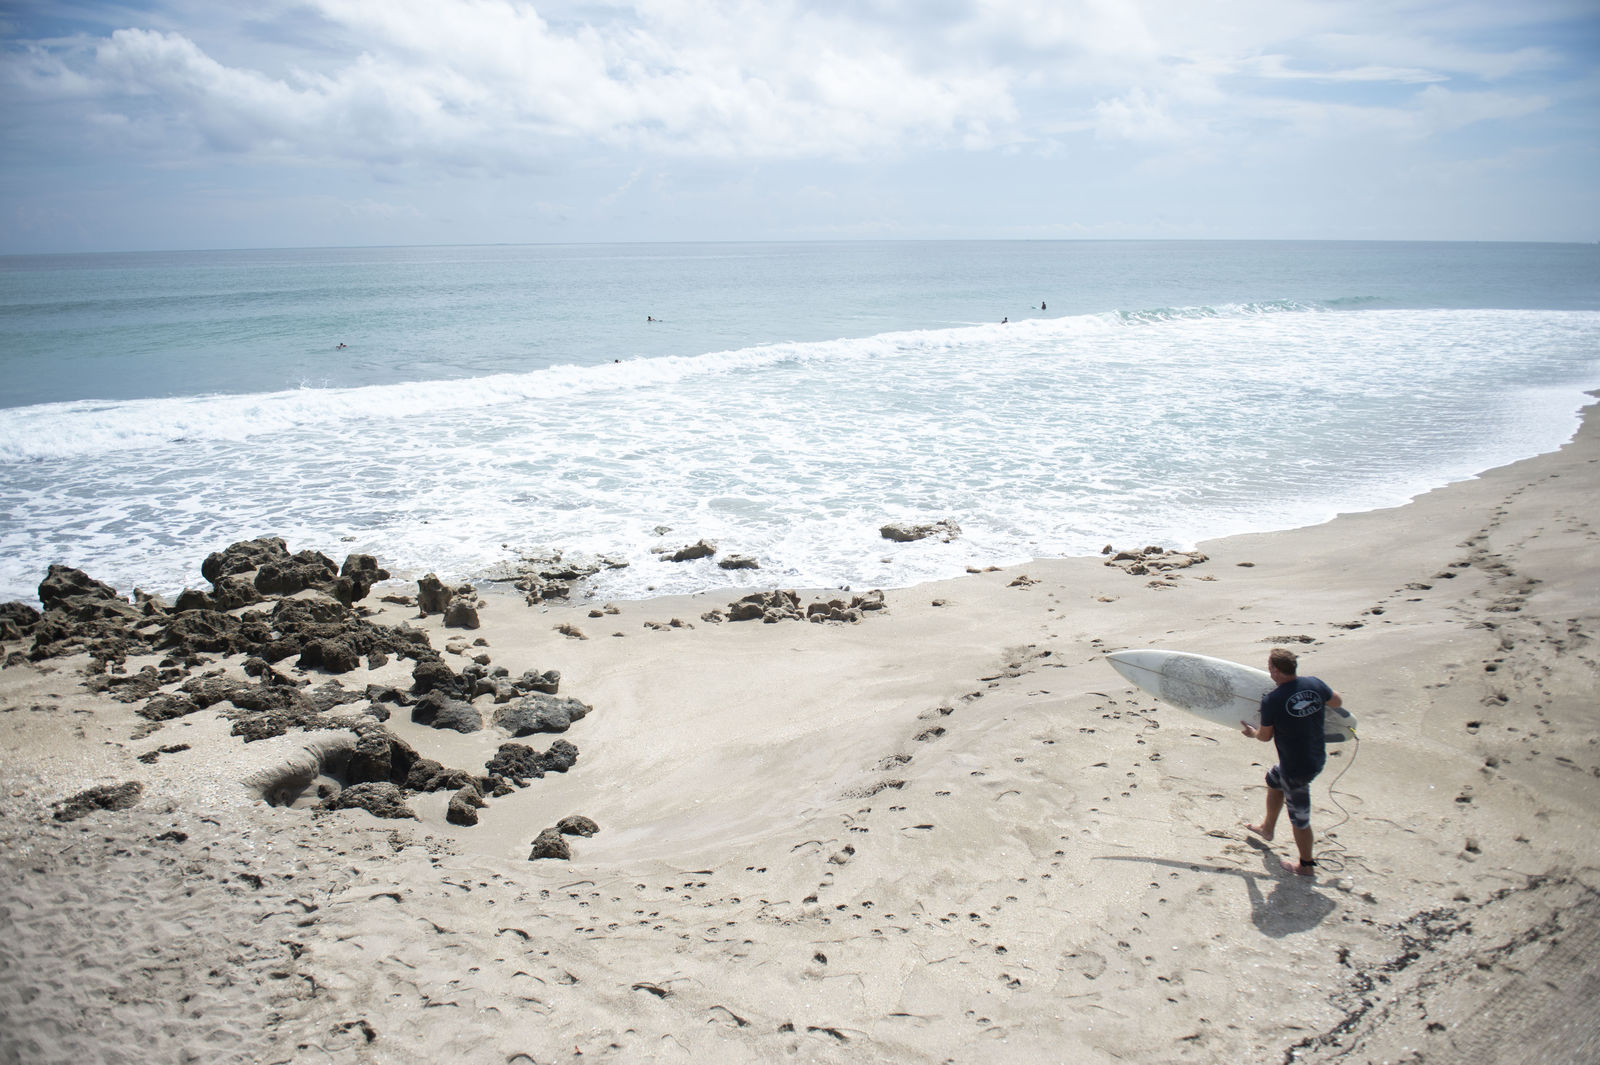 Surfers search for waves ahead of Hurricane Dorian on Thursday, Aug. 29, 2019, at Chastain Beach on Hutchinson Island, Fla. (Leah Voss/TCPalm.com via AP)